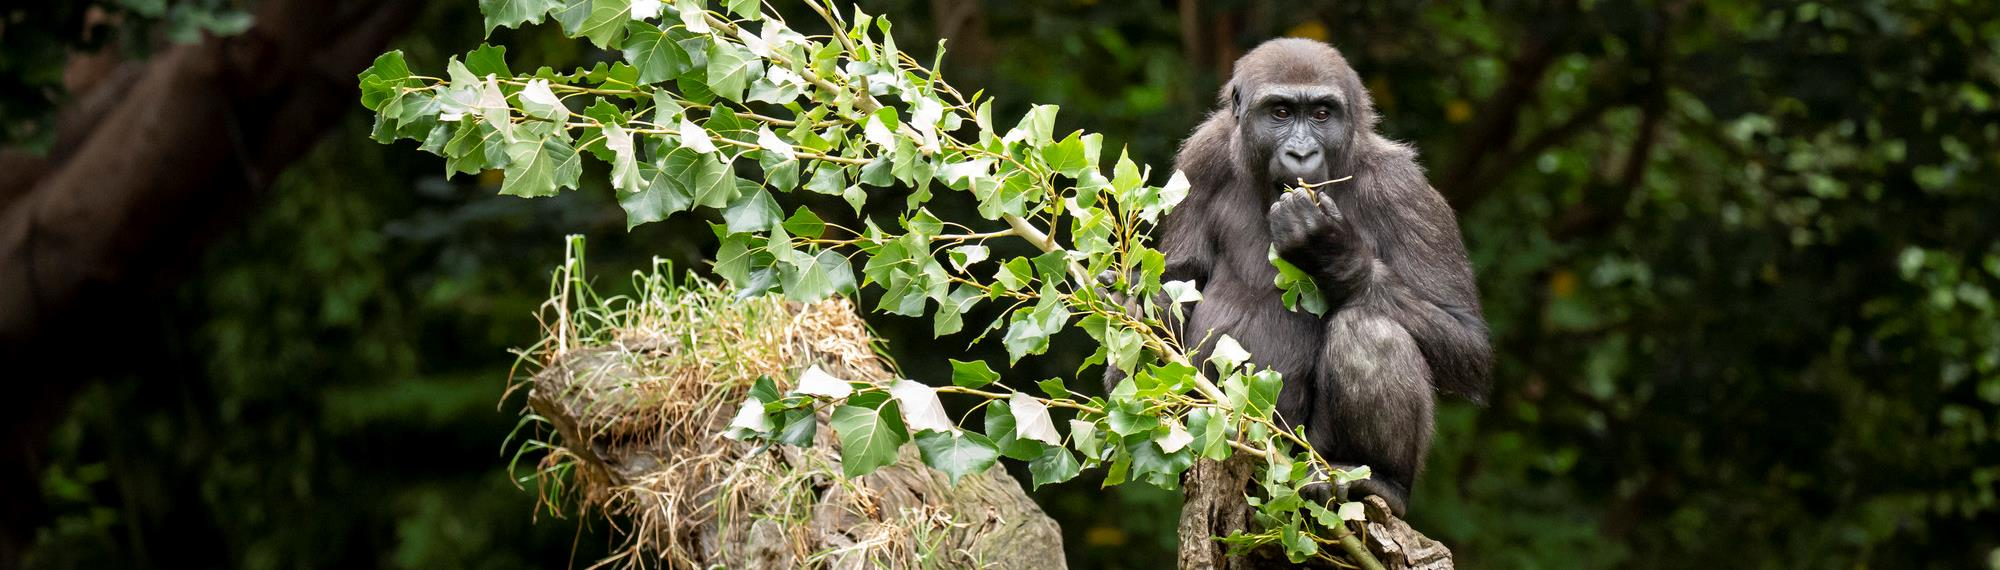 Young gorilla sitting on a log eating from a branch of fresh leaves.